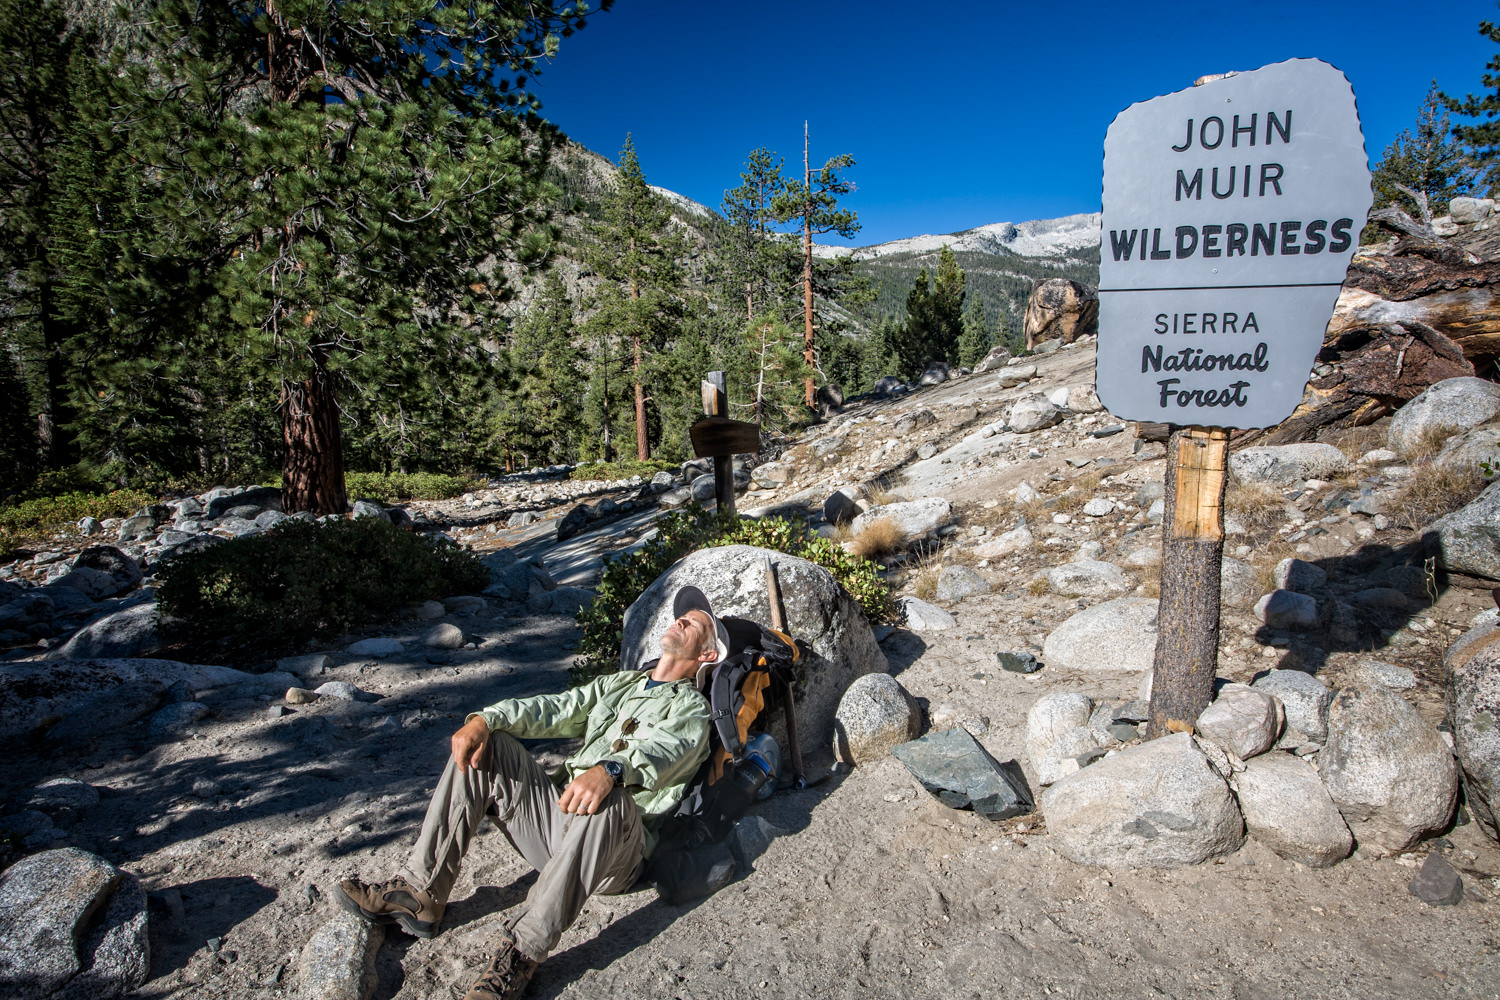 This is really the simplest of all super selfies, but it does tell a brief story about my solo trip on the Pacific Crest Trail through the High Sierras.